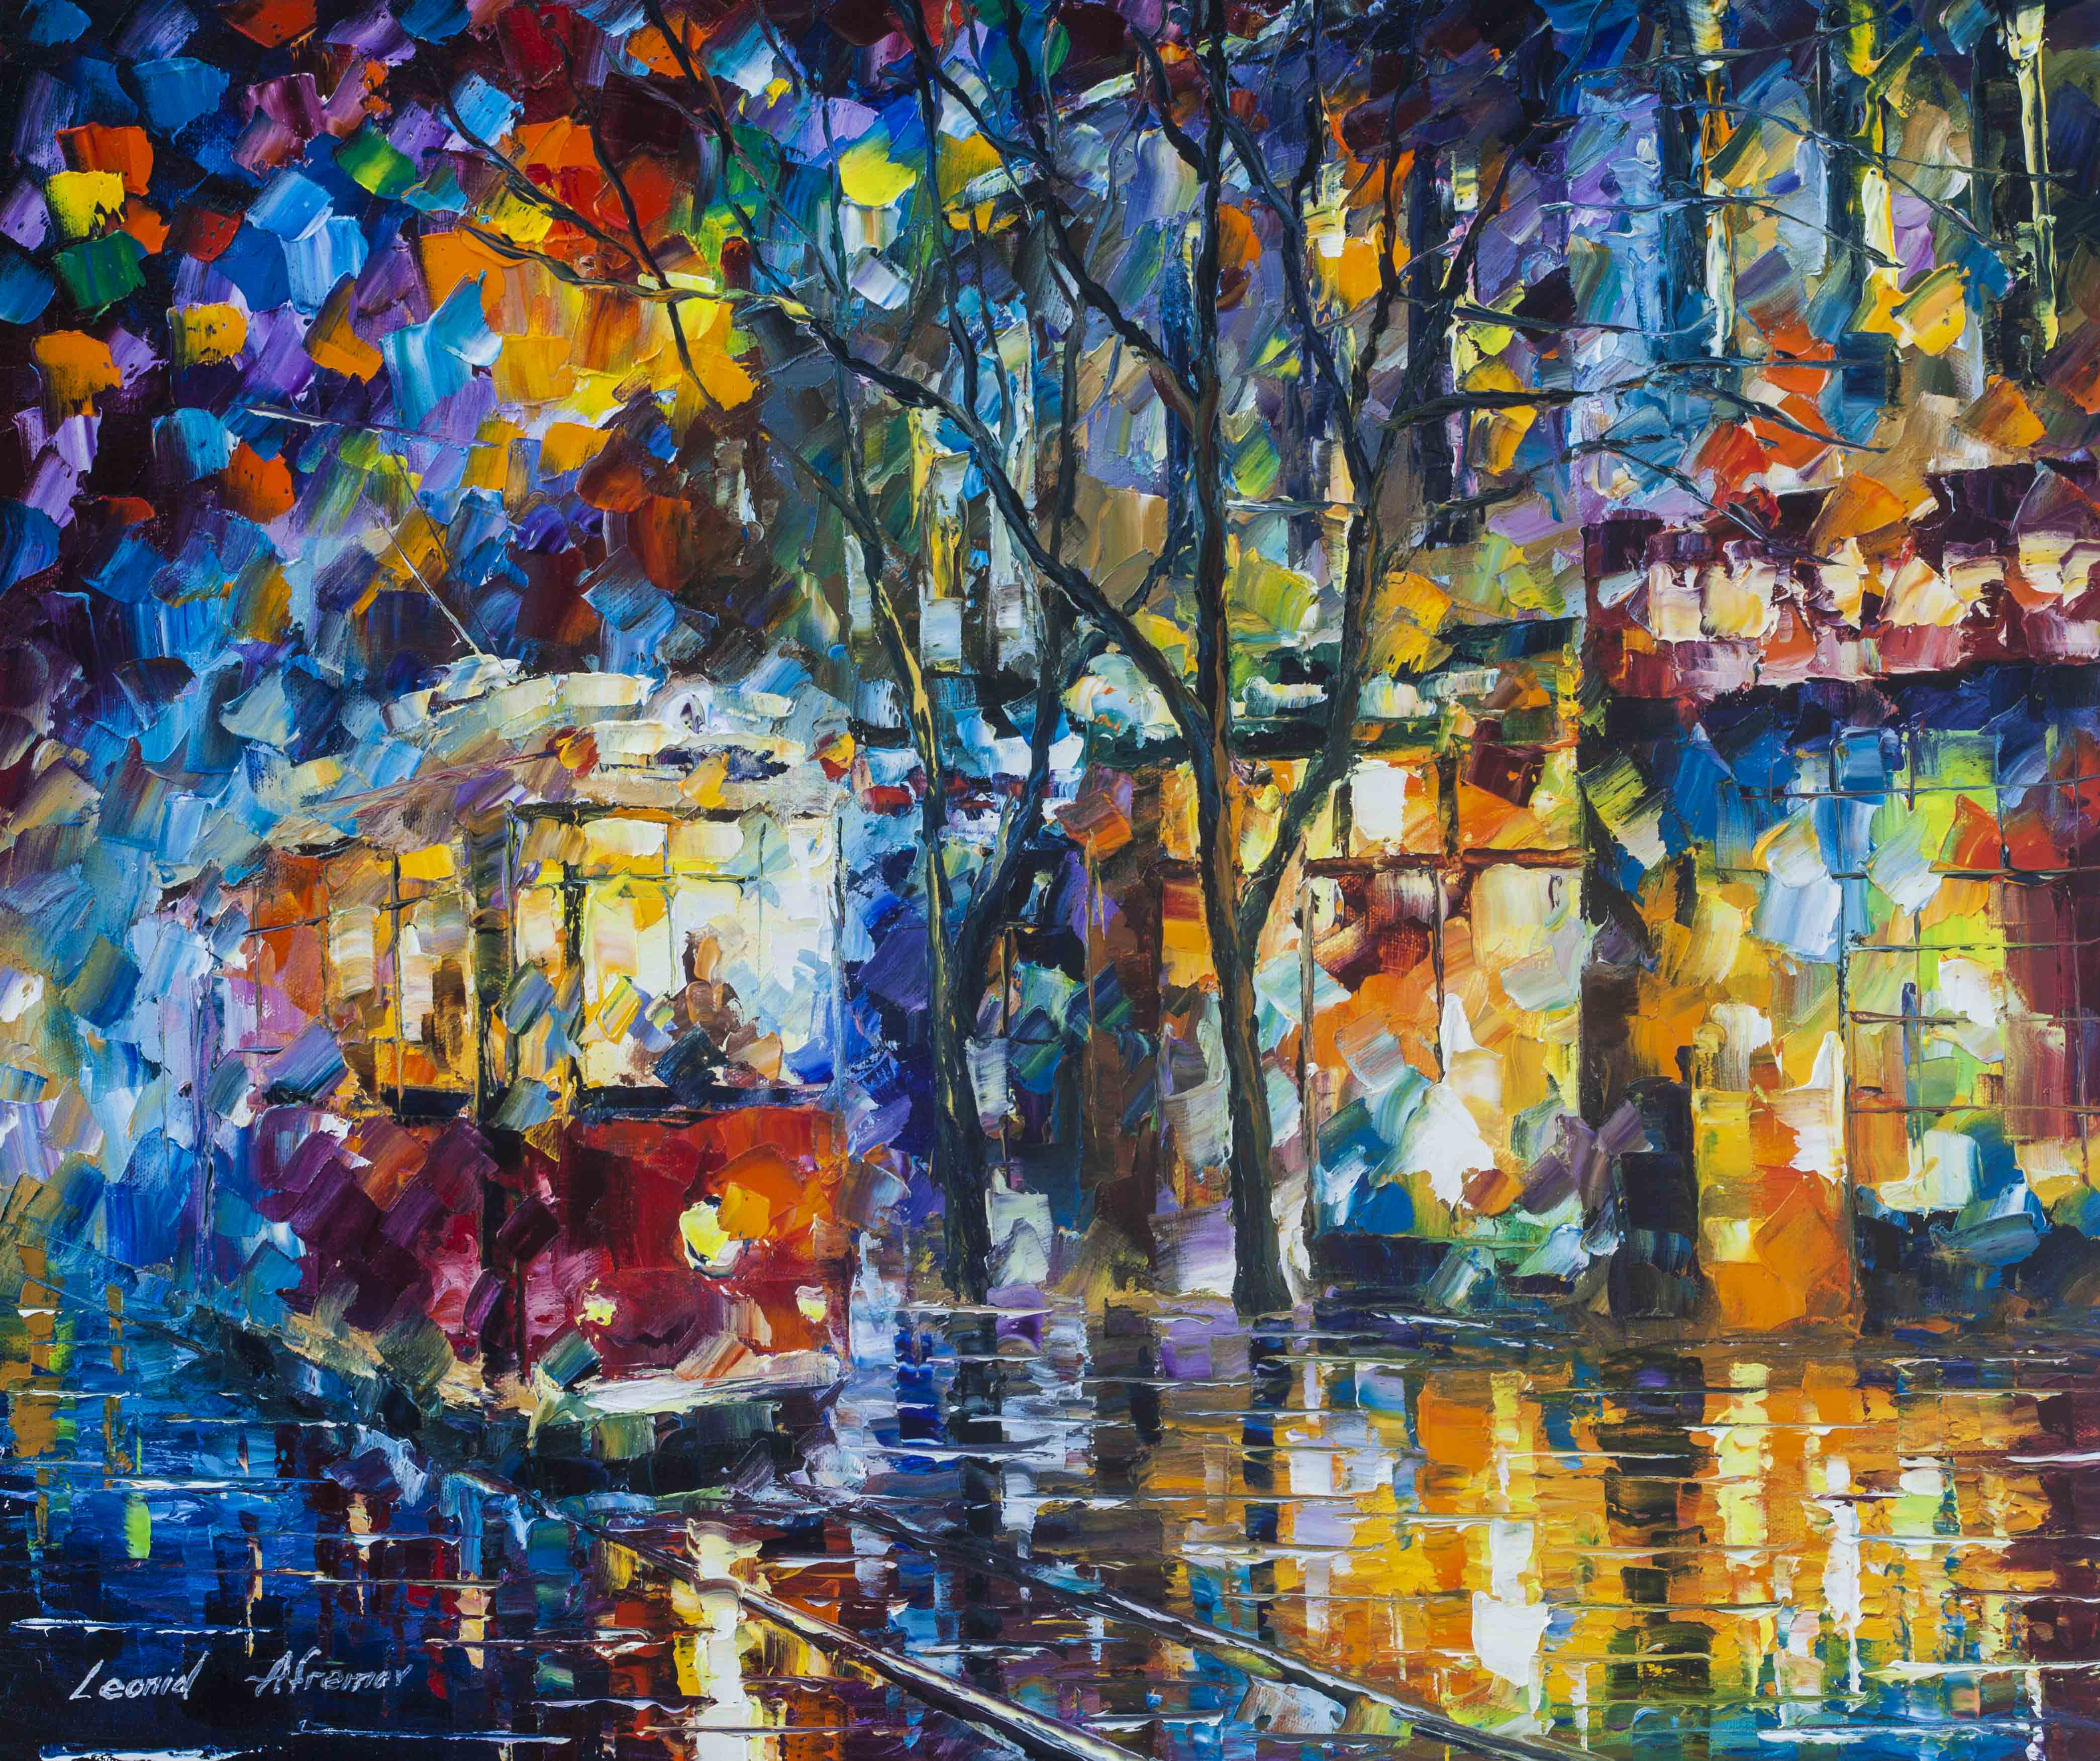 RED TRAM IN THE RAINY CITY